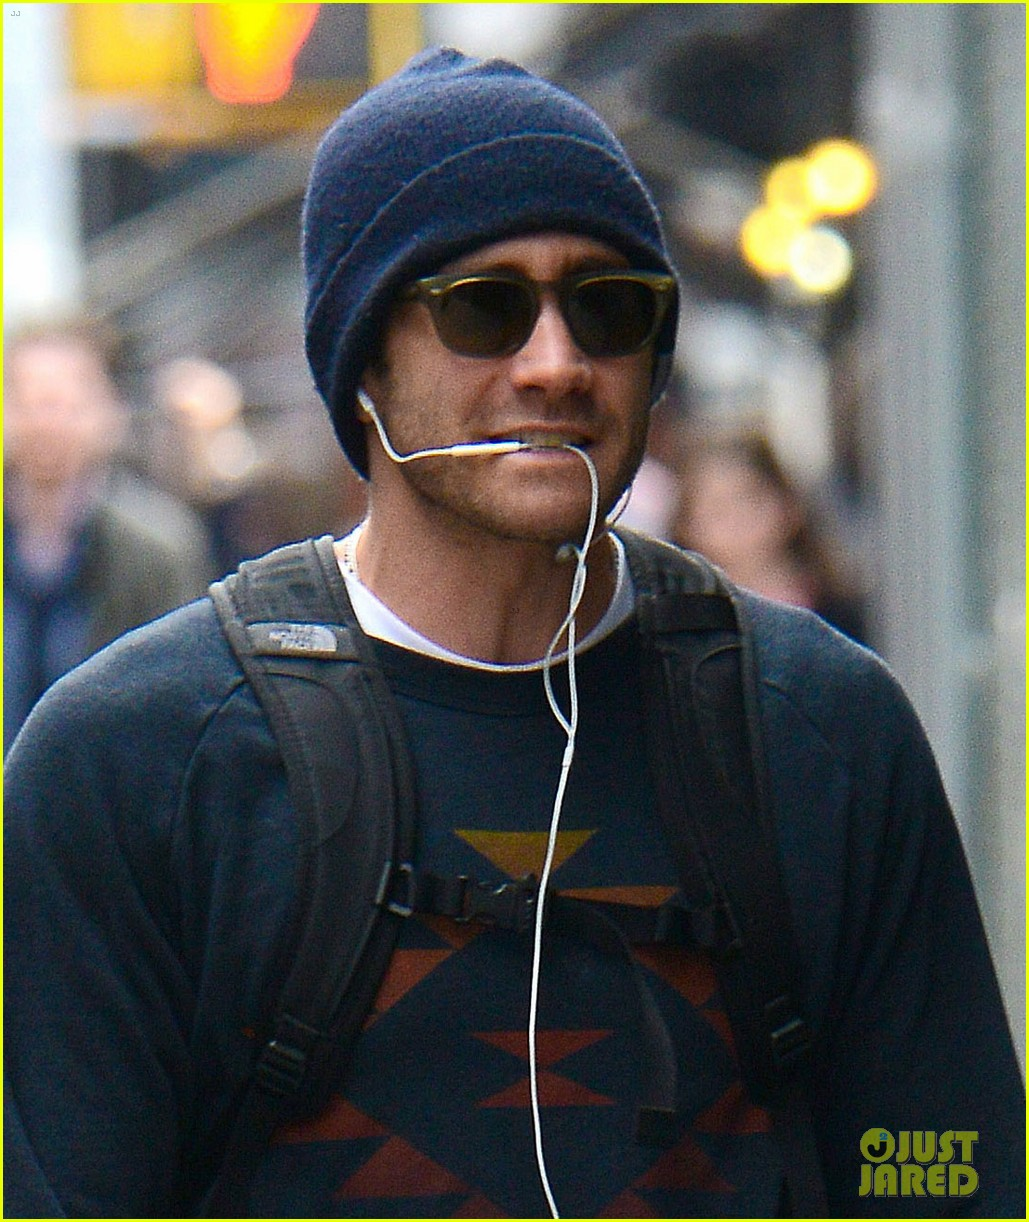 jake gyllenhaal finally shaves his beard off 023117487